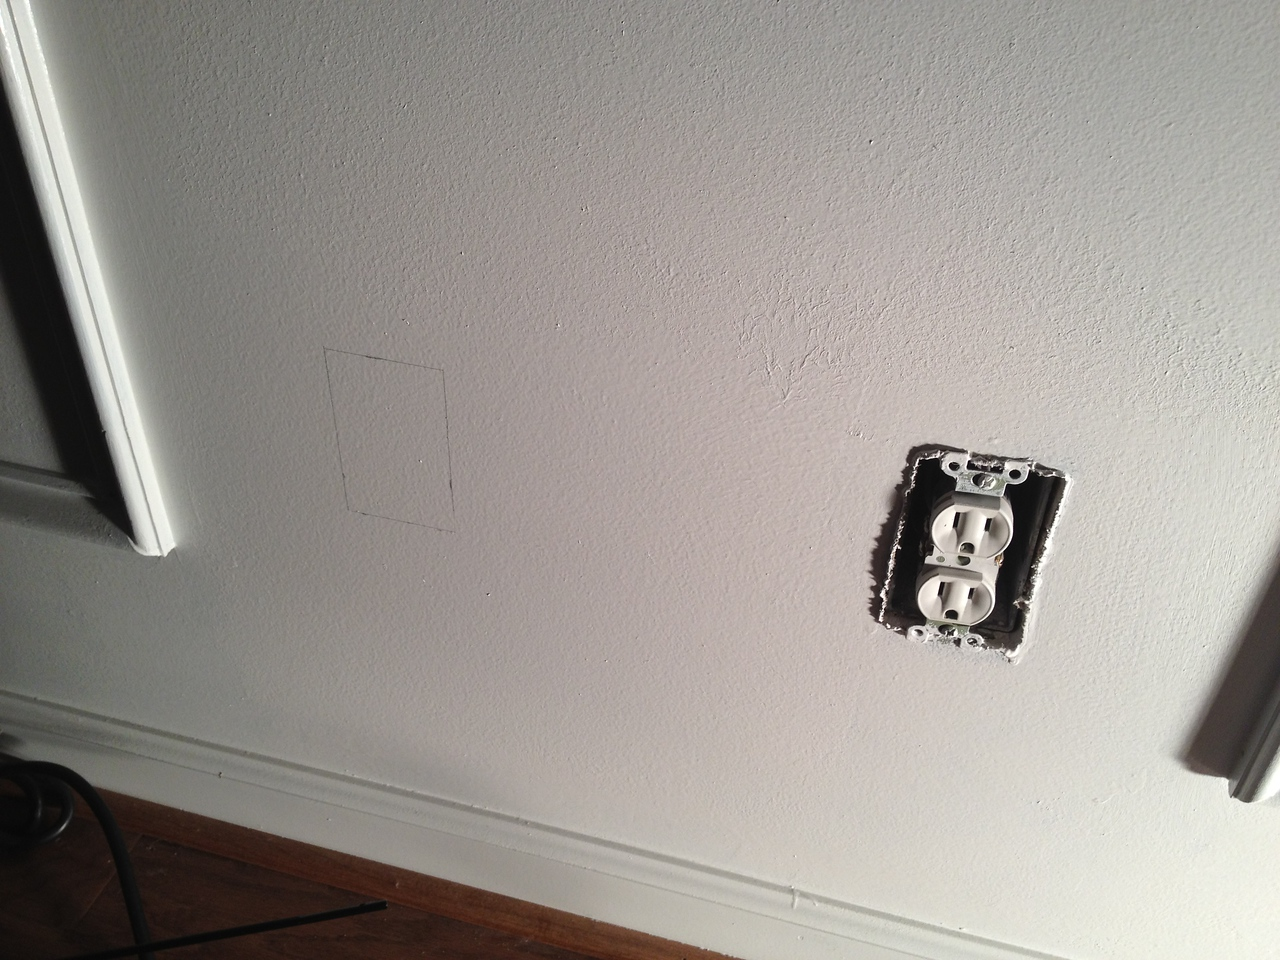 Marking the location for the junction box in the office